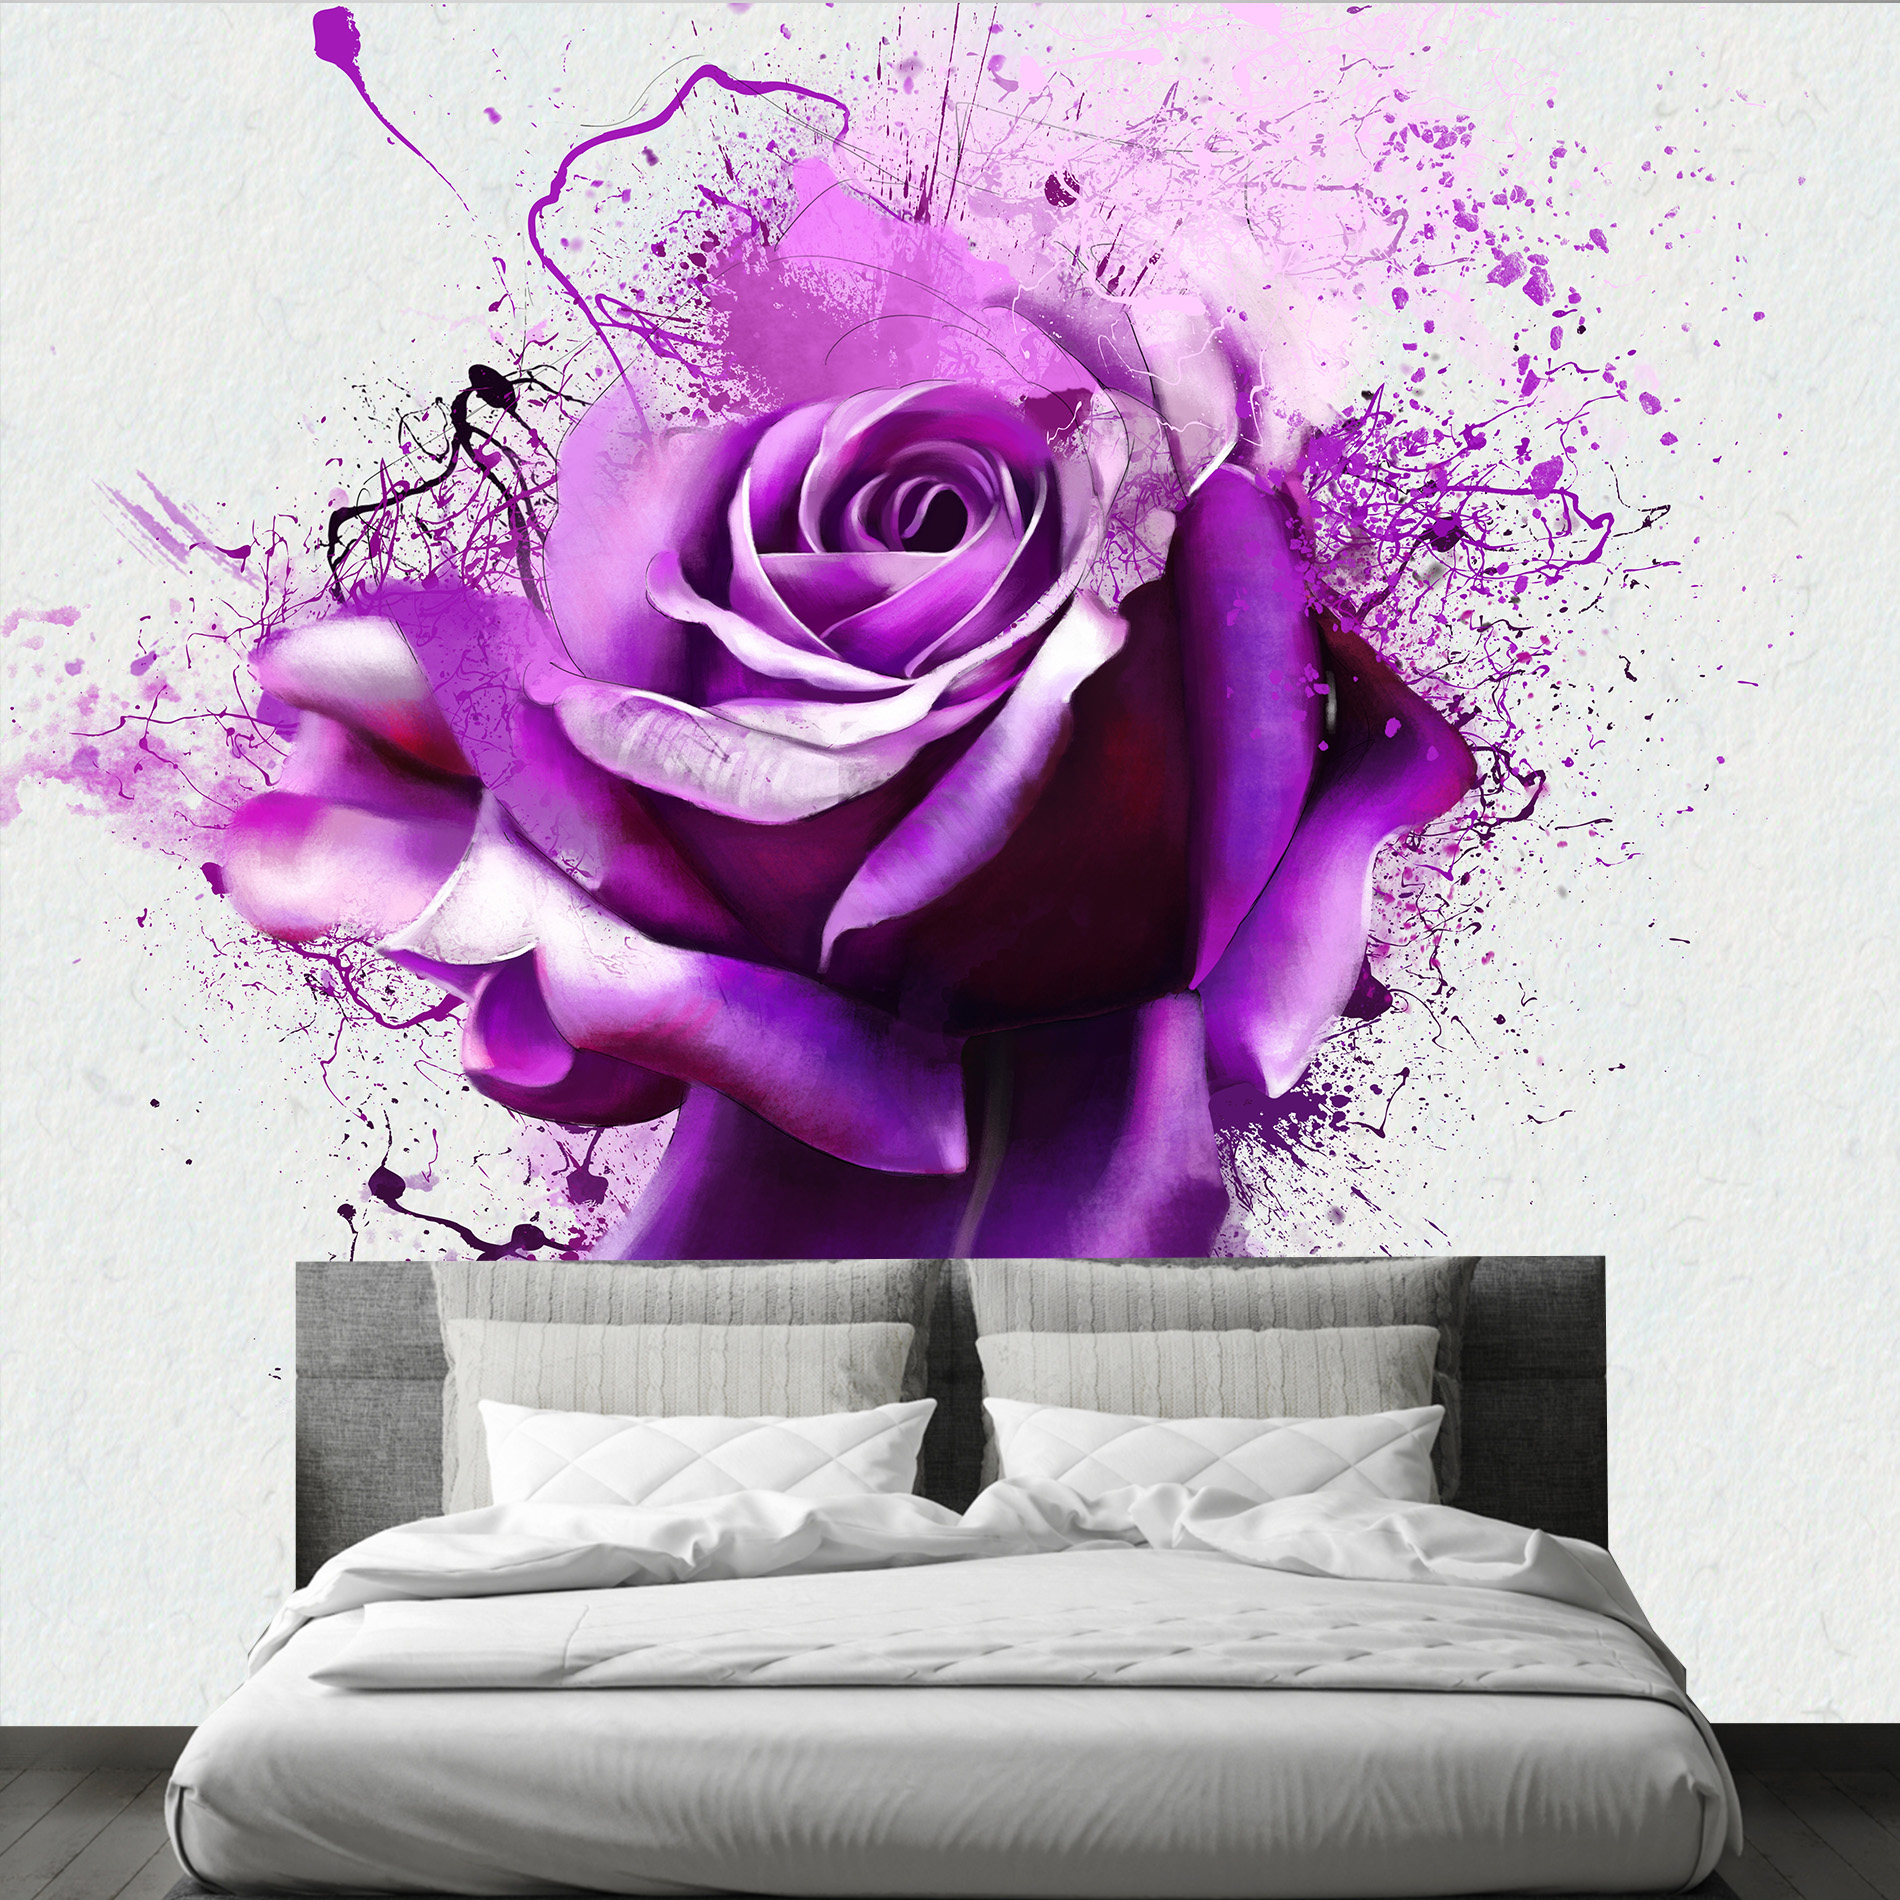 3D Wall Mural Flowers Abstraction. Purple Lilies Wallpaper. Stereoscopic Wall Mural For Home Hall Bedroom